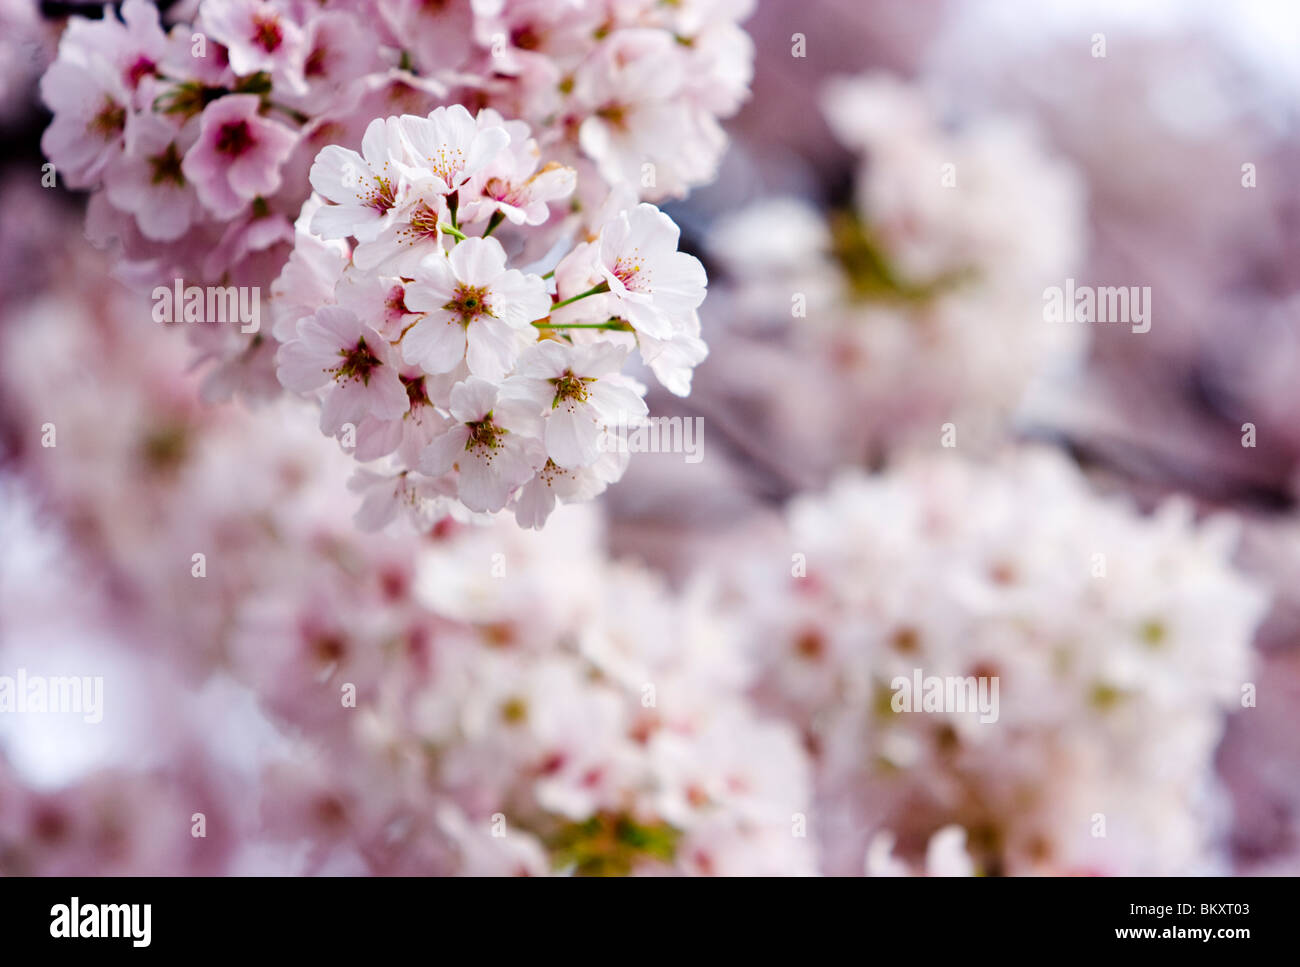 Cherry blossoms in Washington DC during Cherry Blossom Festival - Stock Image